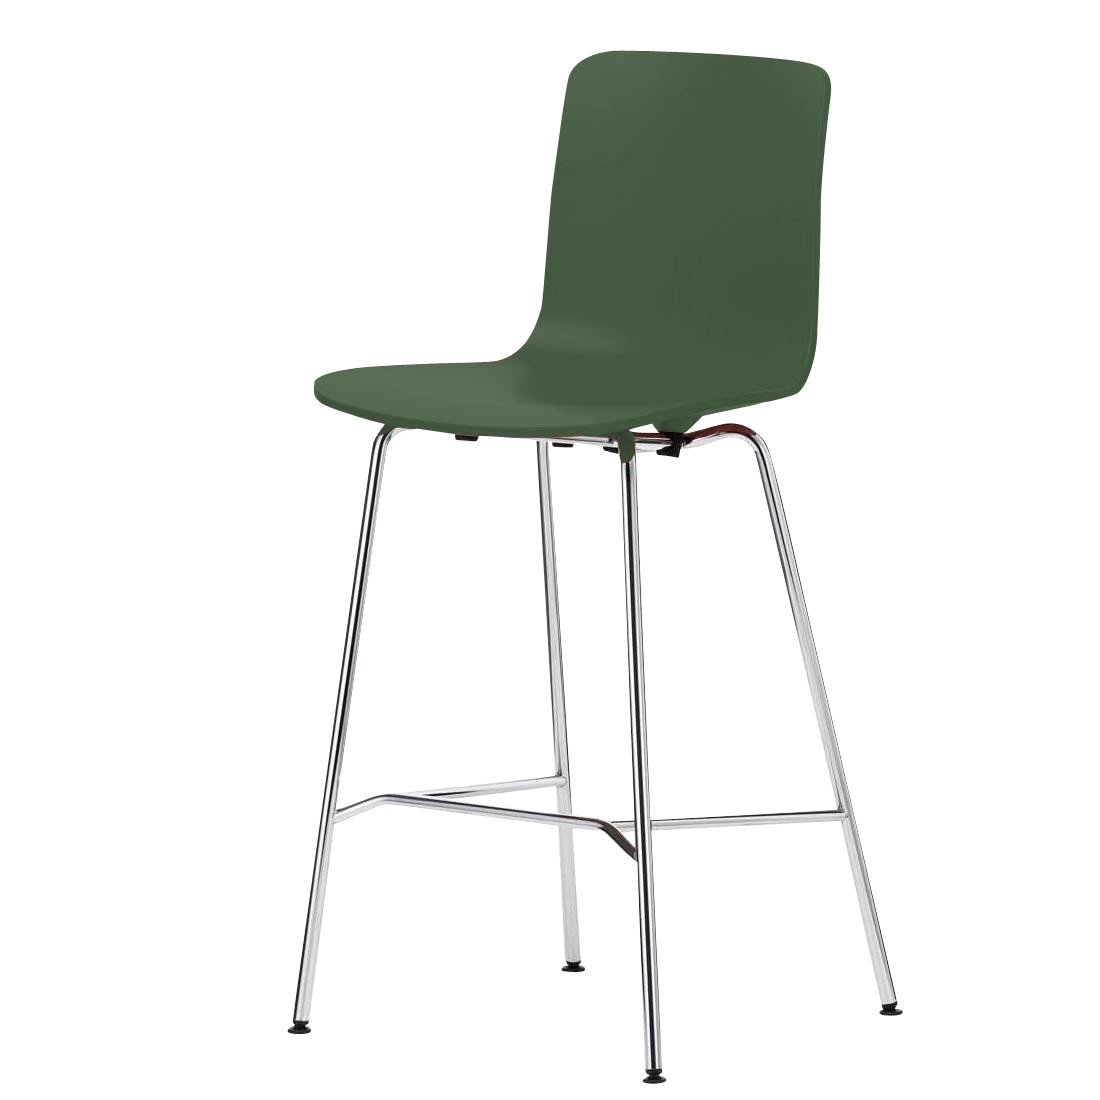 Vitra Hal Wood Stoel Hal Stool Vitra Chair House Interior Design Cwc Interiors